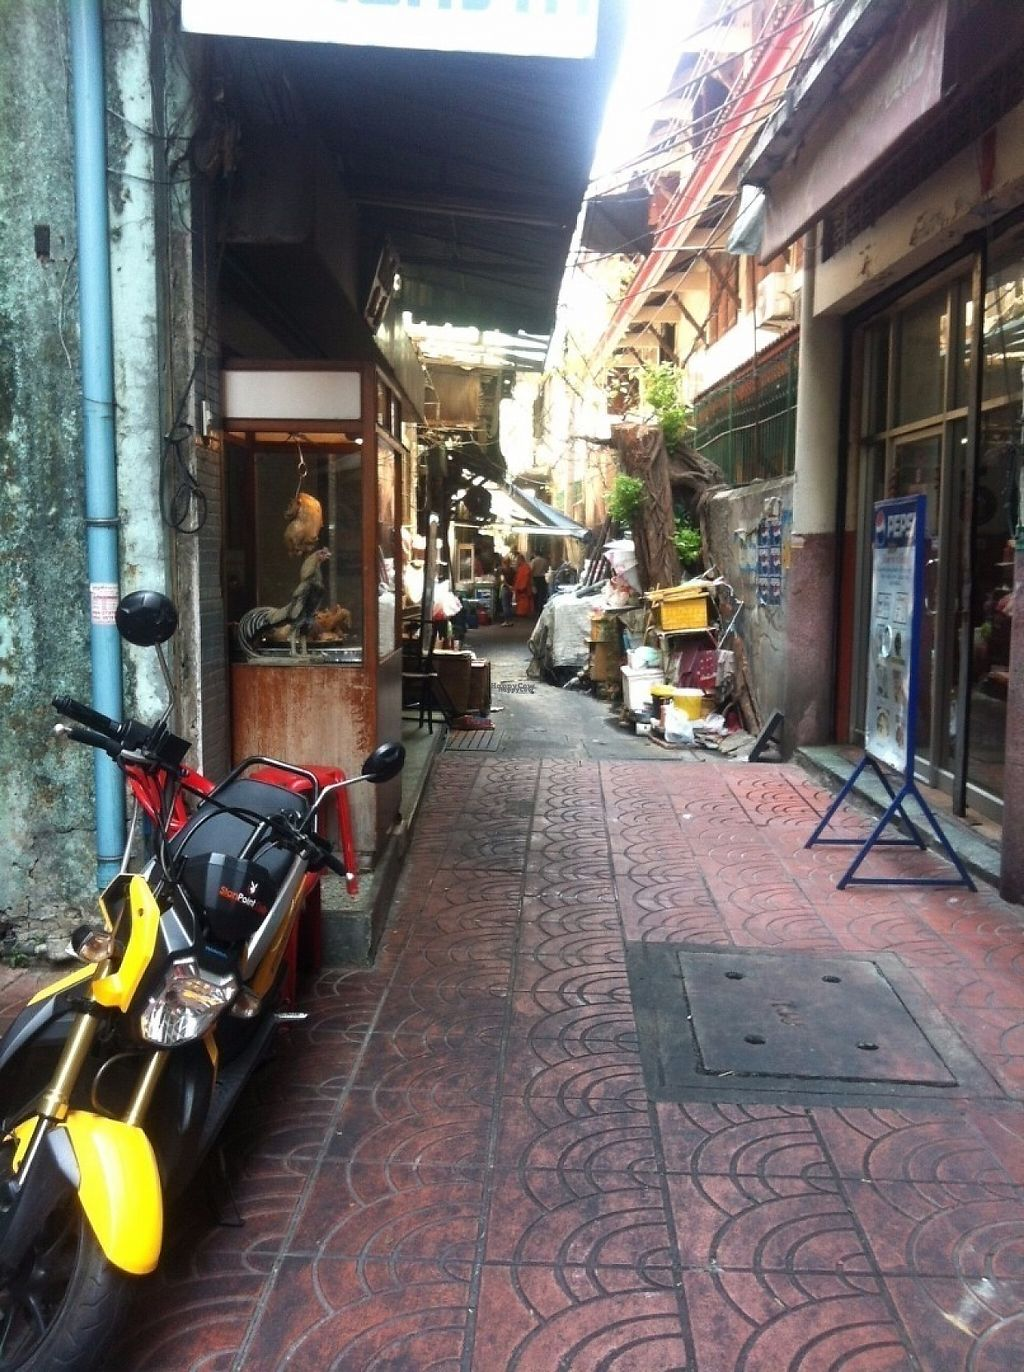 """Photo of Lee Jae Veg  by <a href=""""/members/profile/Cyclinggal"""">Cyclinggal</a> <br/>Keep walking down the alley, you'll see a temple at the beginning of the alley on your left <br/> March 4, 2017  - <a href='/contact/abuse/image/38192/232425'>Report</a>"""